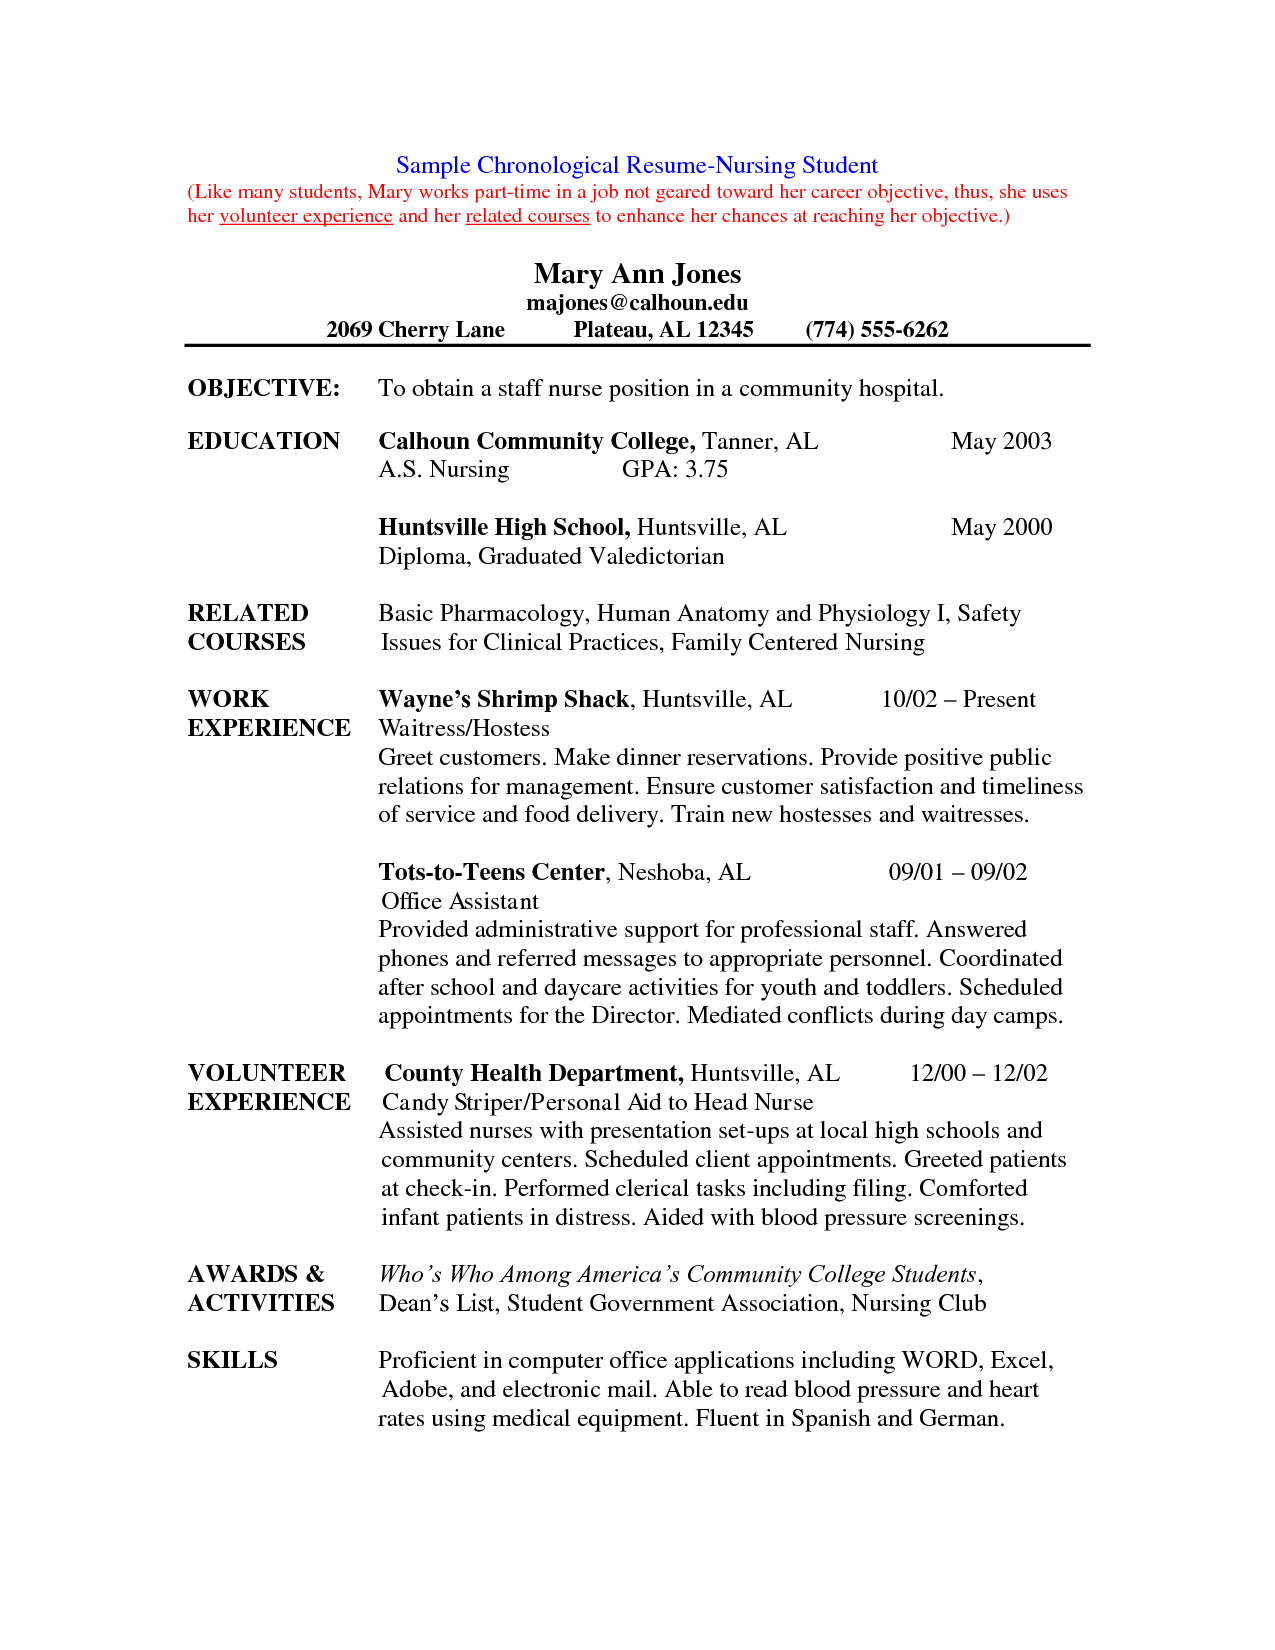 Nursing Student Resume Template HDResume Templates Cover Letter Examples  Resume Examples For College Students